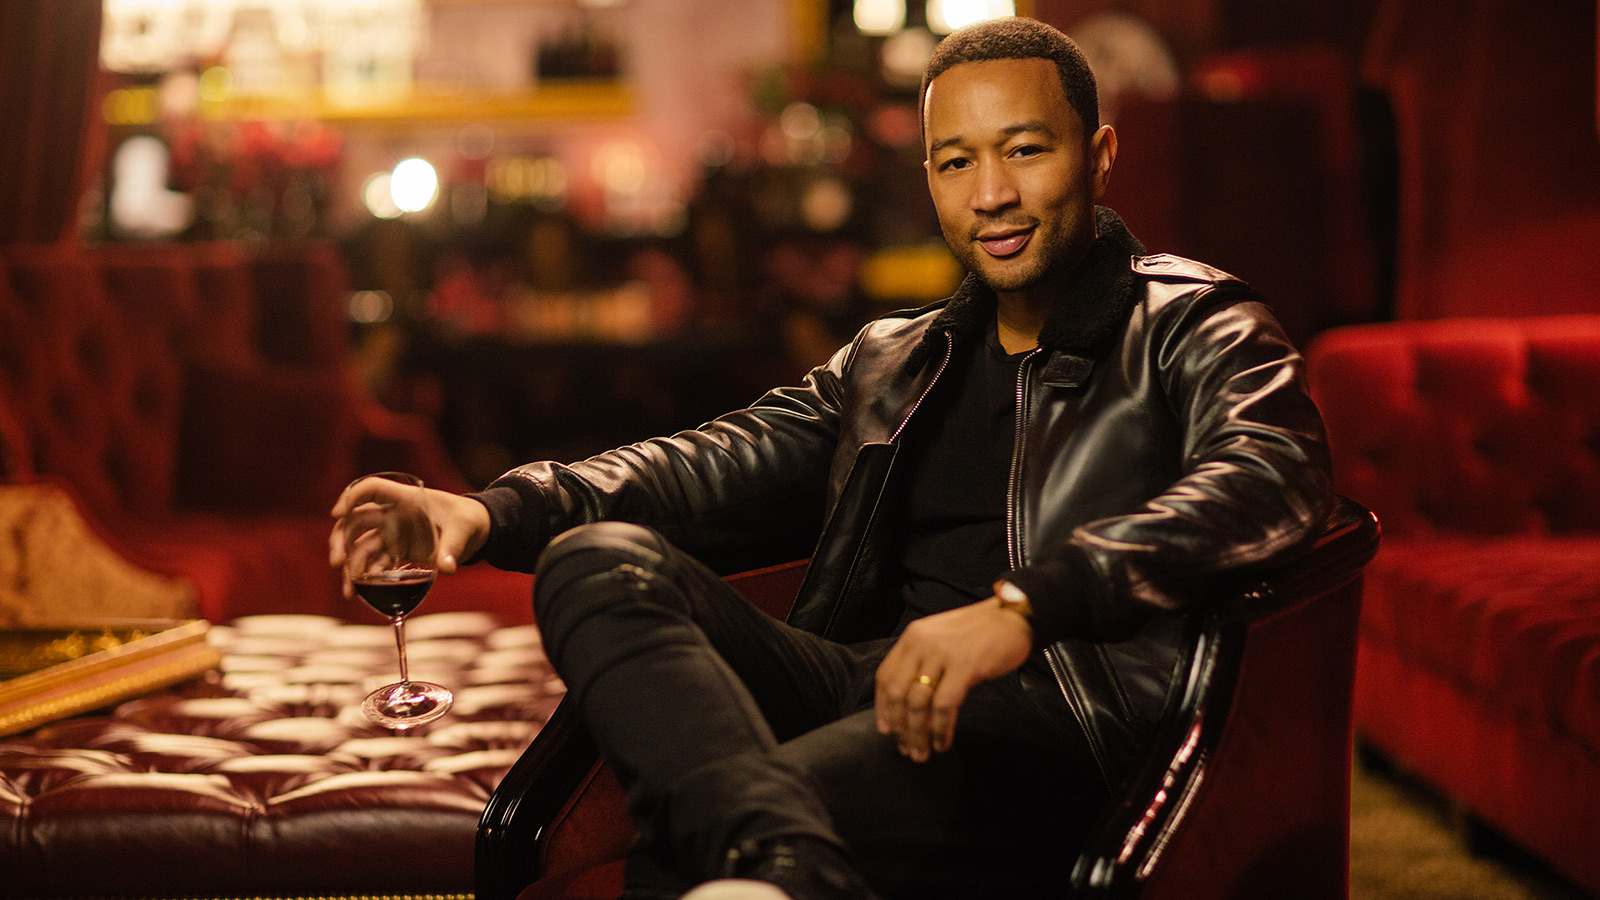 john legend computer wallpaper pictures 63444